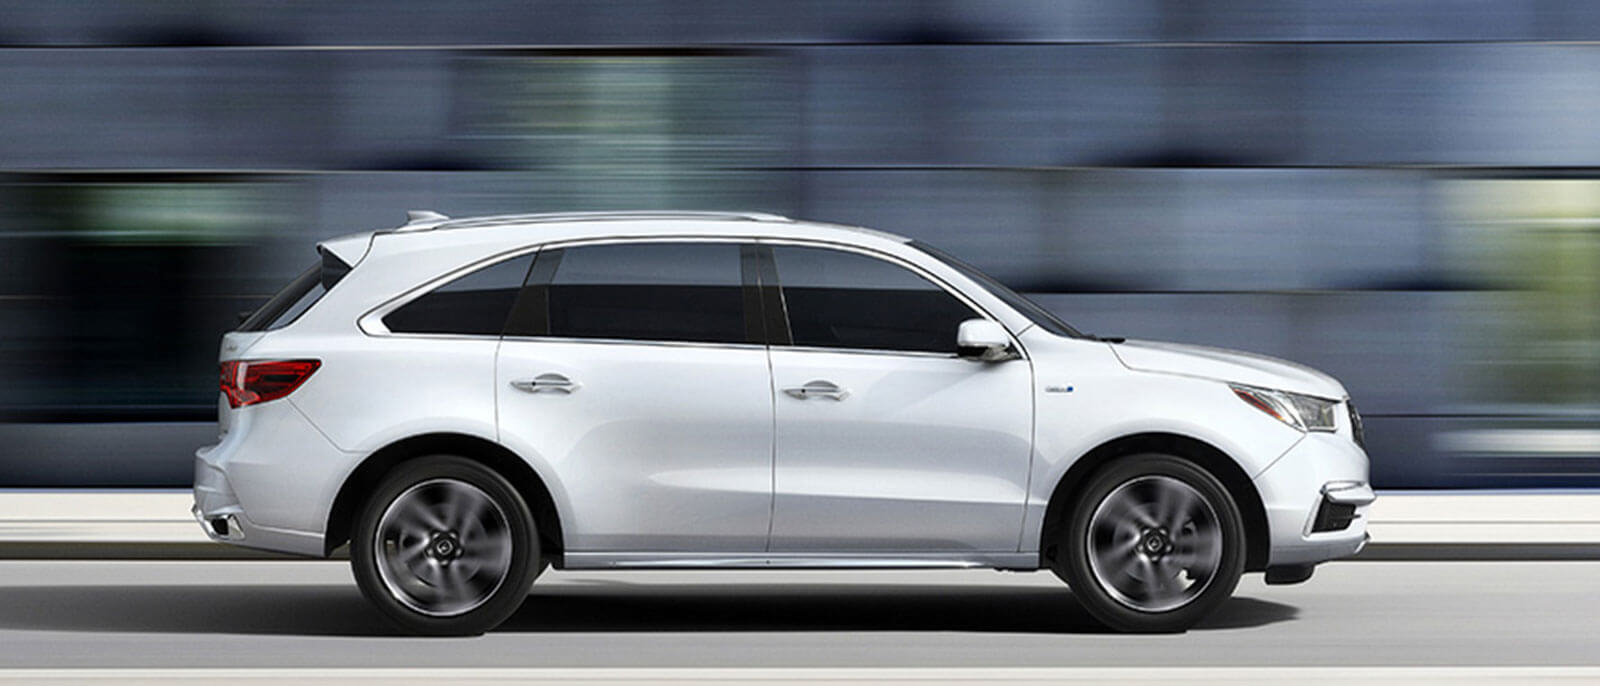 Lease A New Acura MDX At Joe Rizza Acura Orland Park - Acura mdx for lease